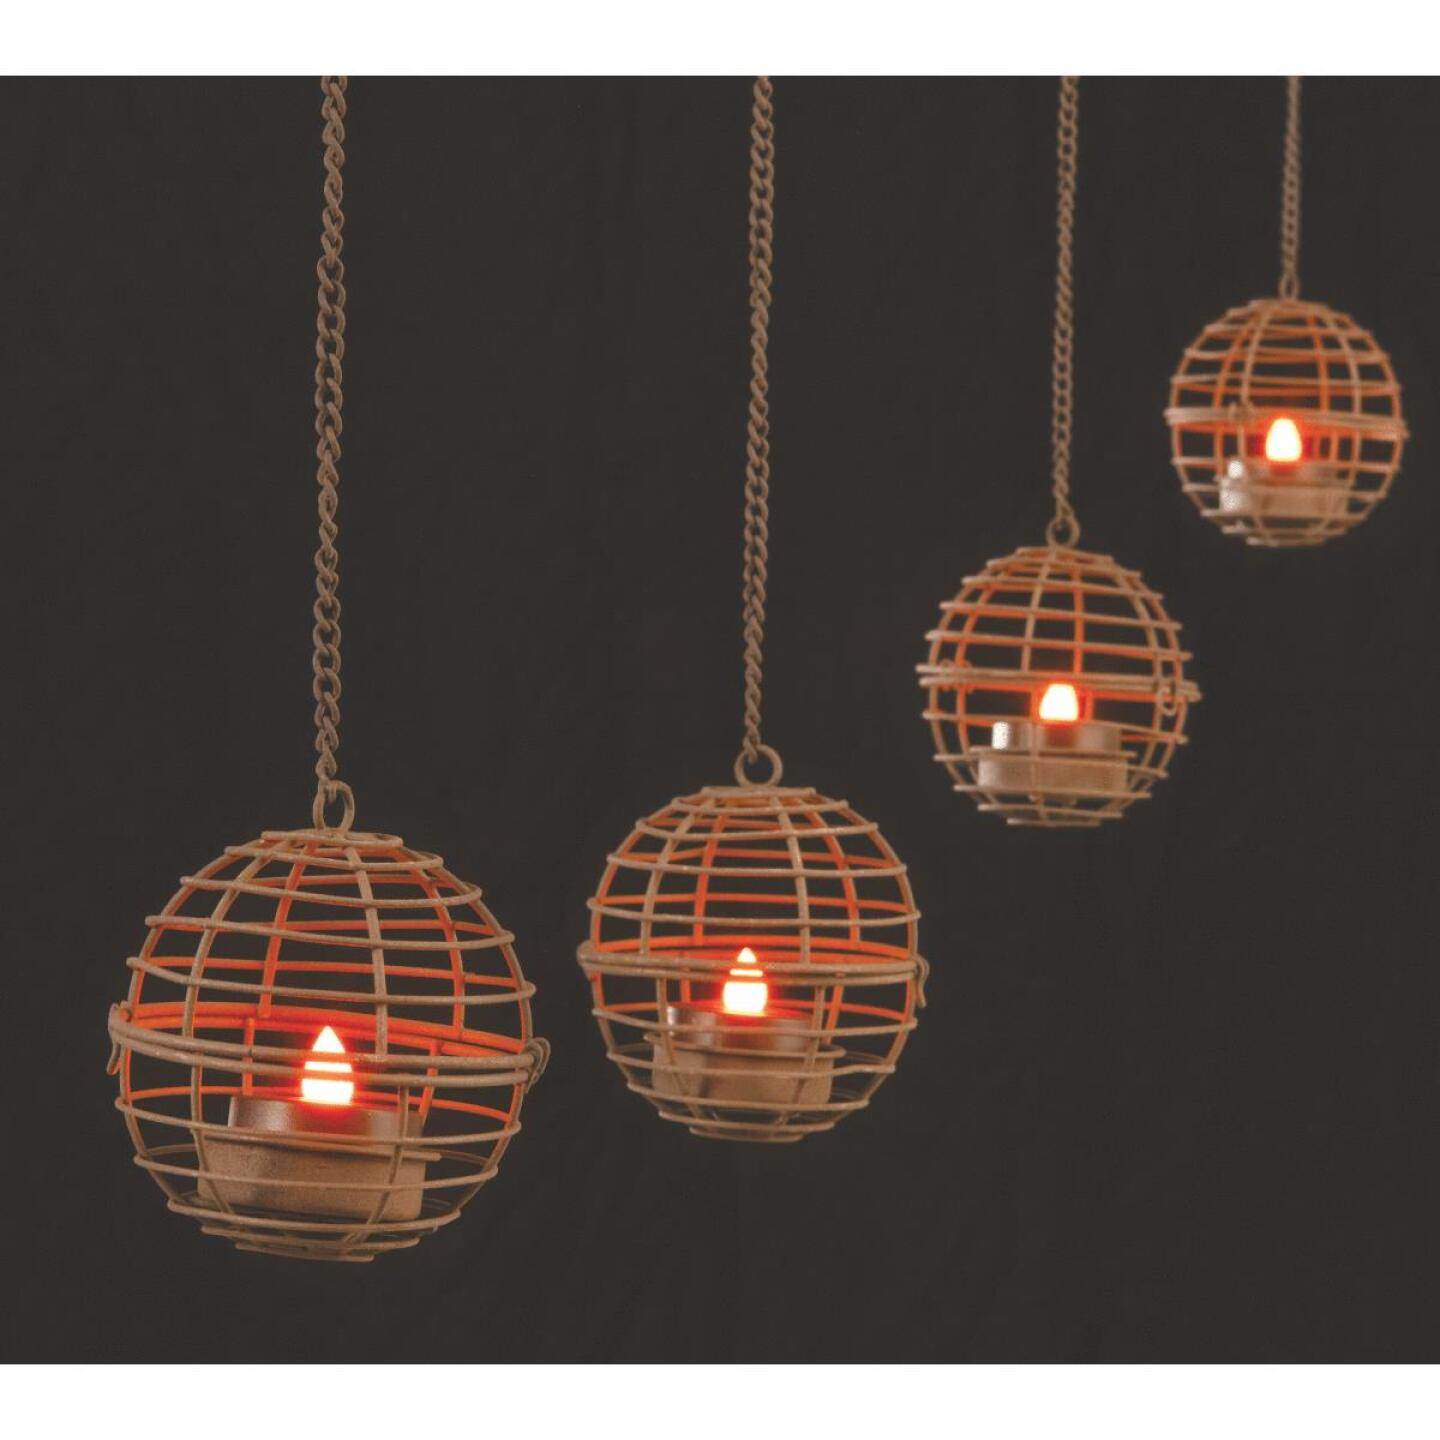 Gerson 4-Light Brown Wire Hanging Fireball Patio Light Set (4-Pack) Image 4